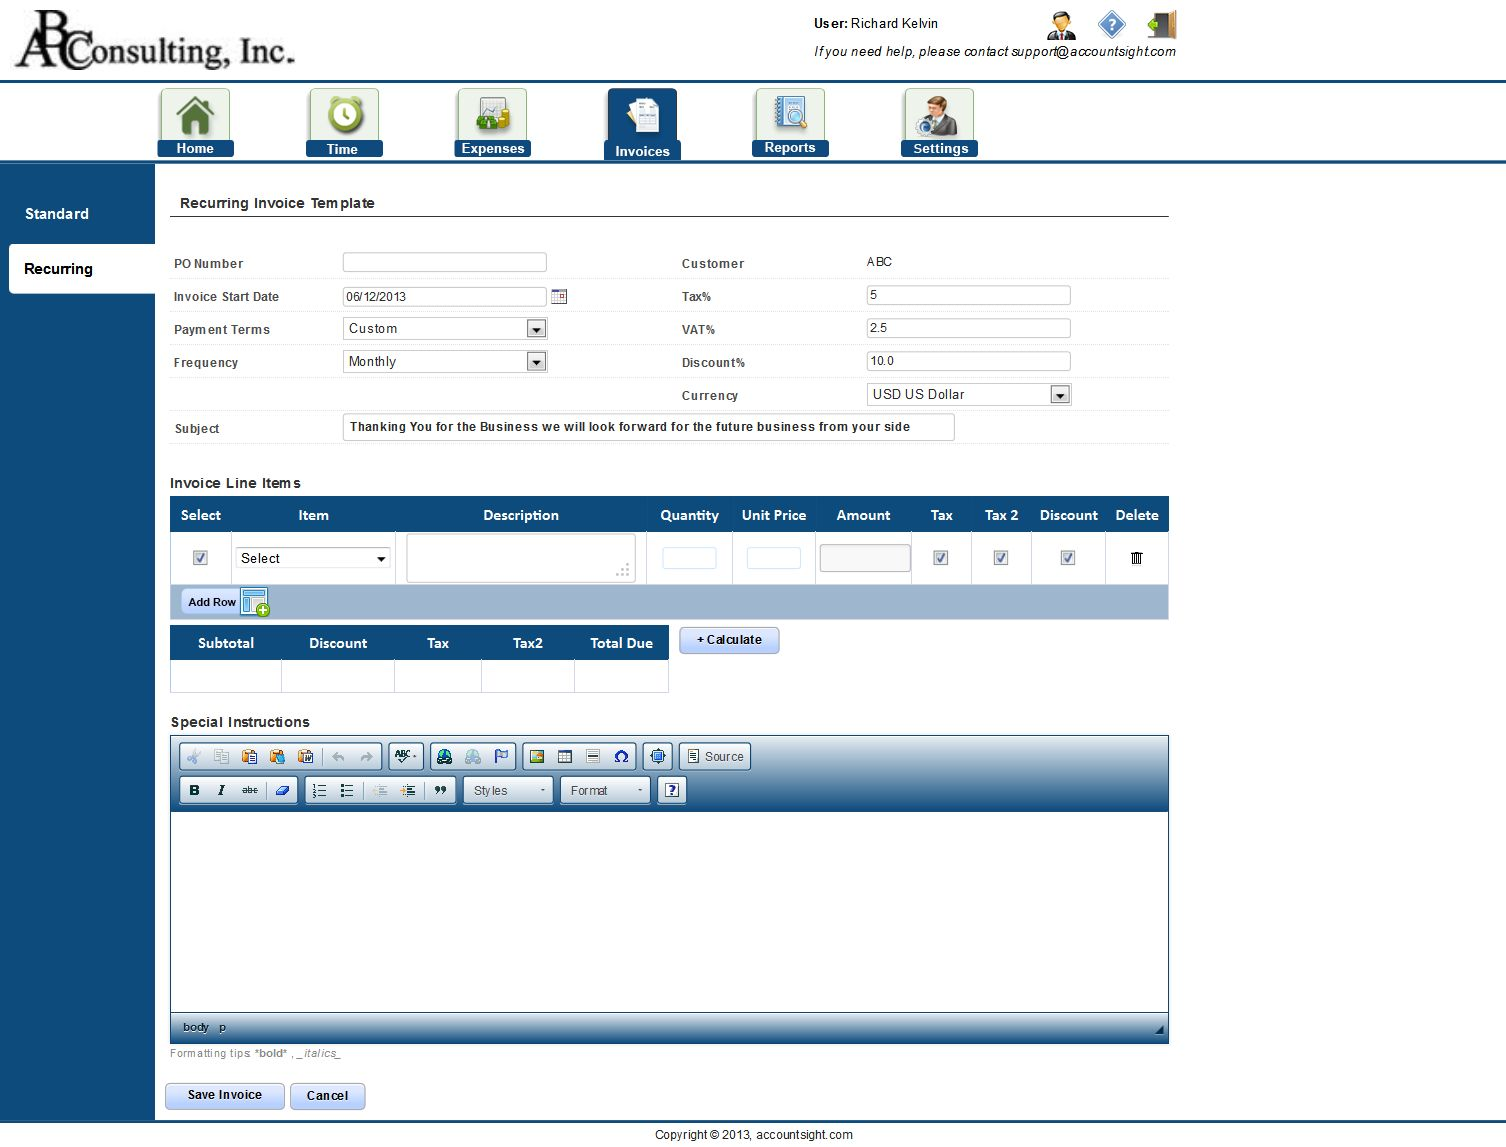 AccountSight Invoice Tracking Software Recurring Invoices